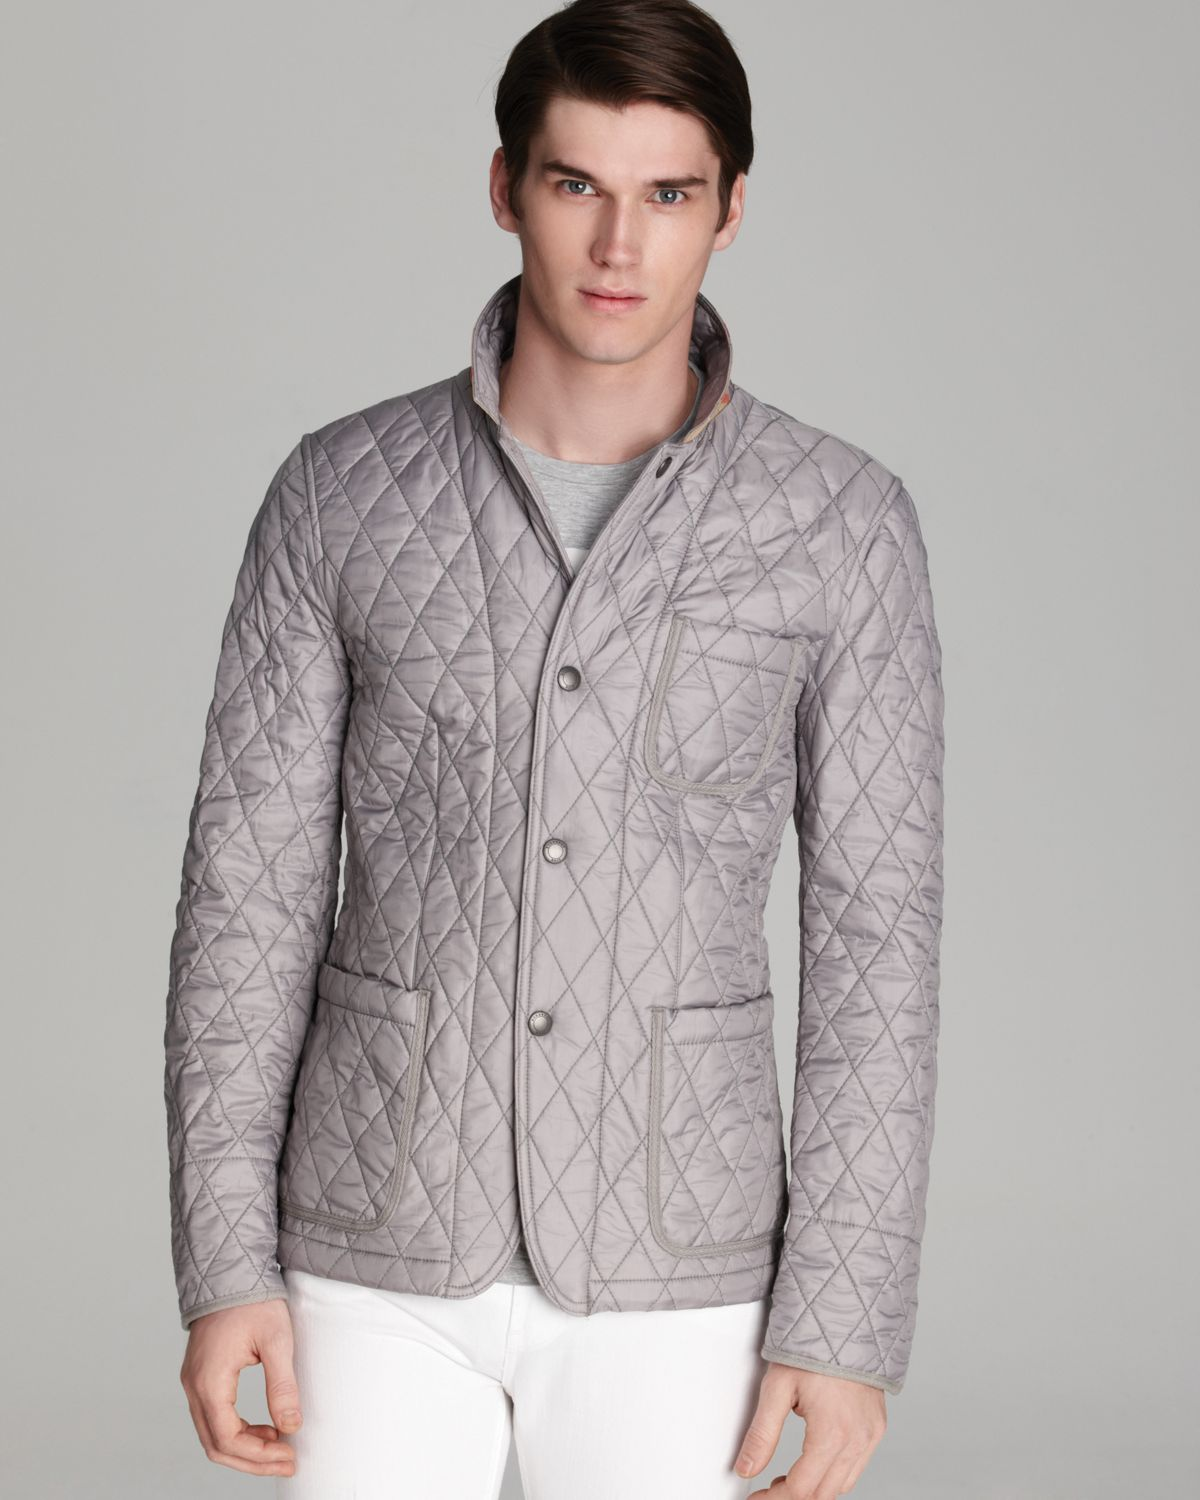 Quilted jacket mens fashion 82